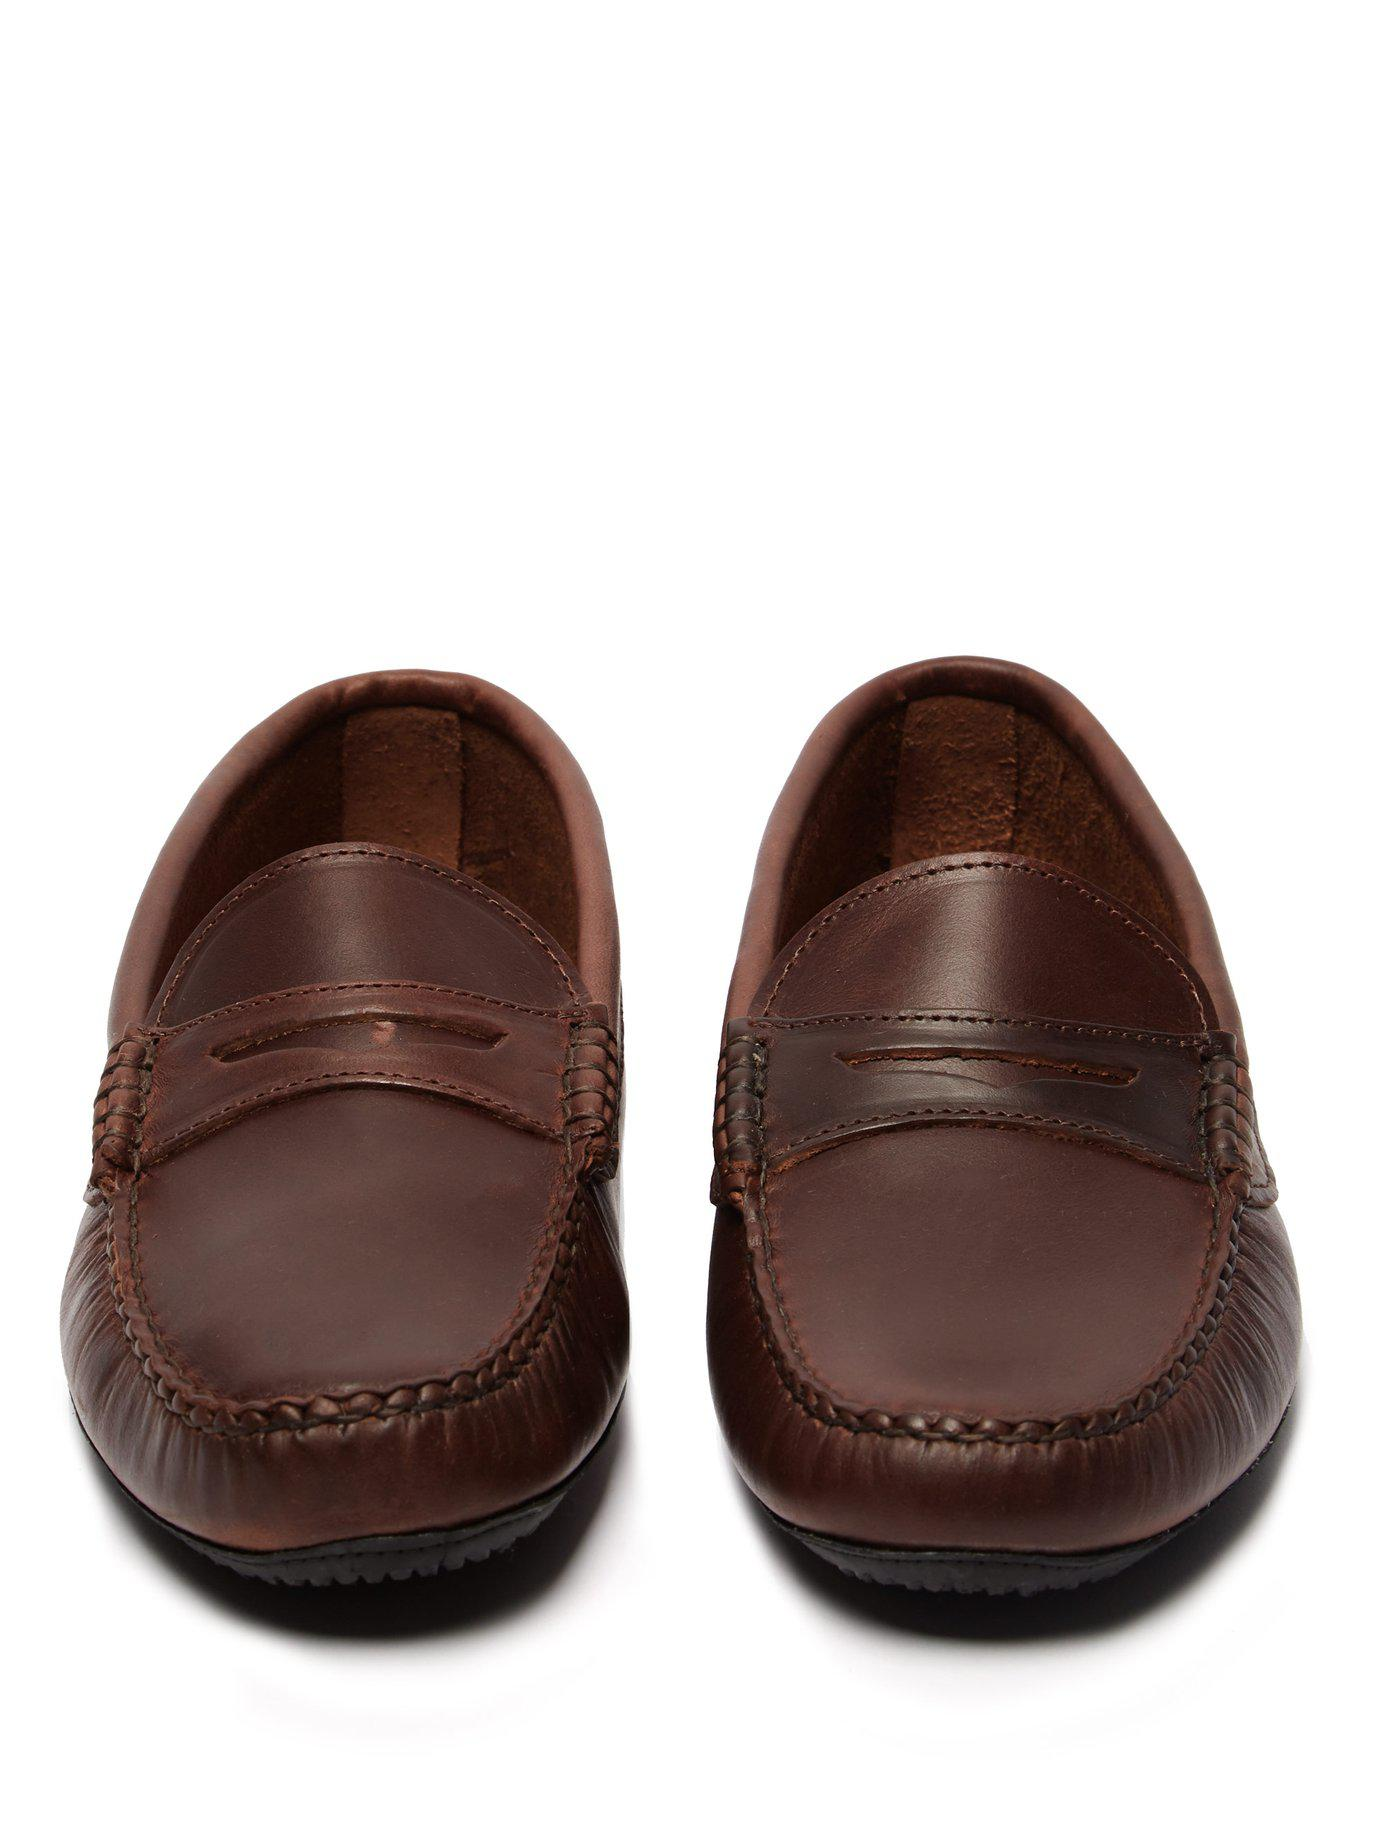 c9ba9501c06 Quoddy - Brown Penny Driver Leather Loafers for Men - Lyst. View fullscreen